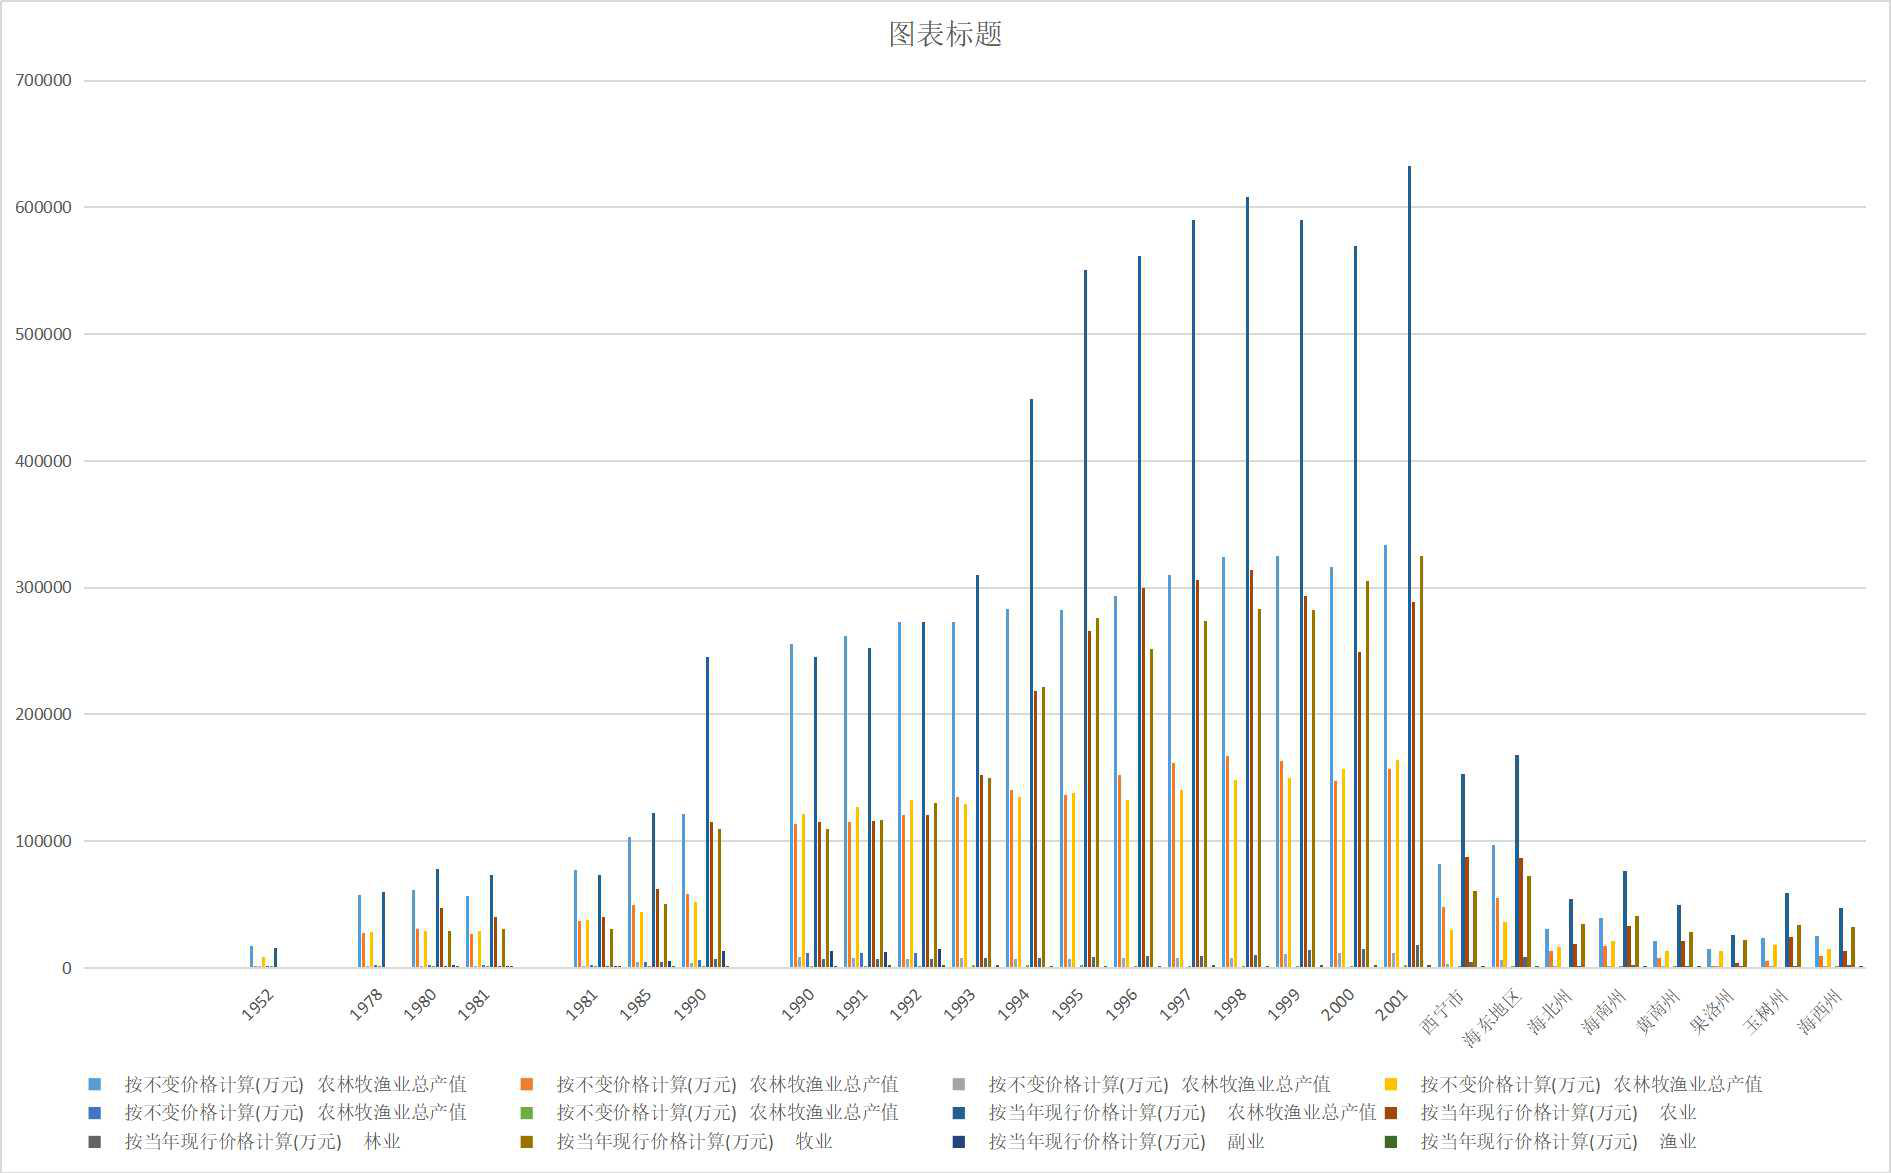 Gross output value of agriculture, forestry, animal husbandry and fishery in Qinghai Province (1952-2018)